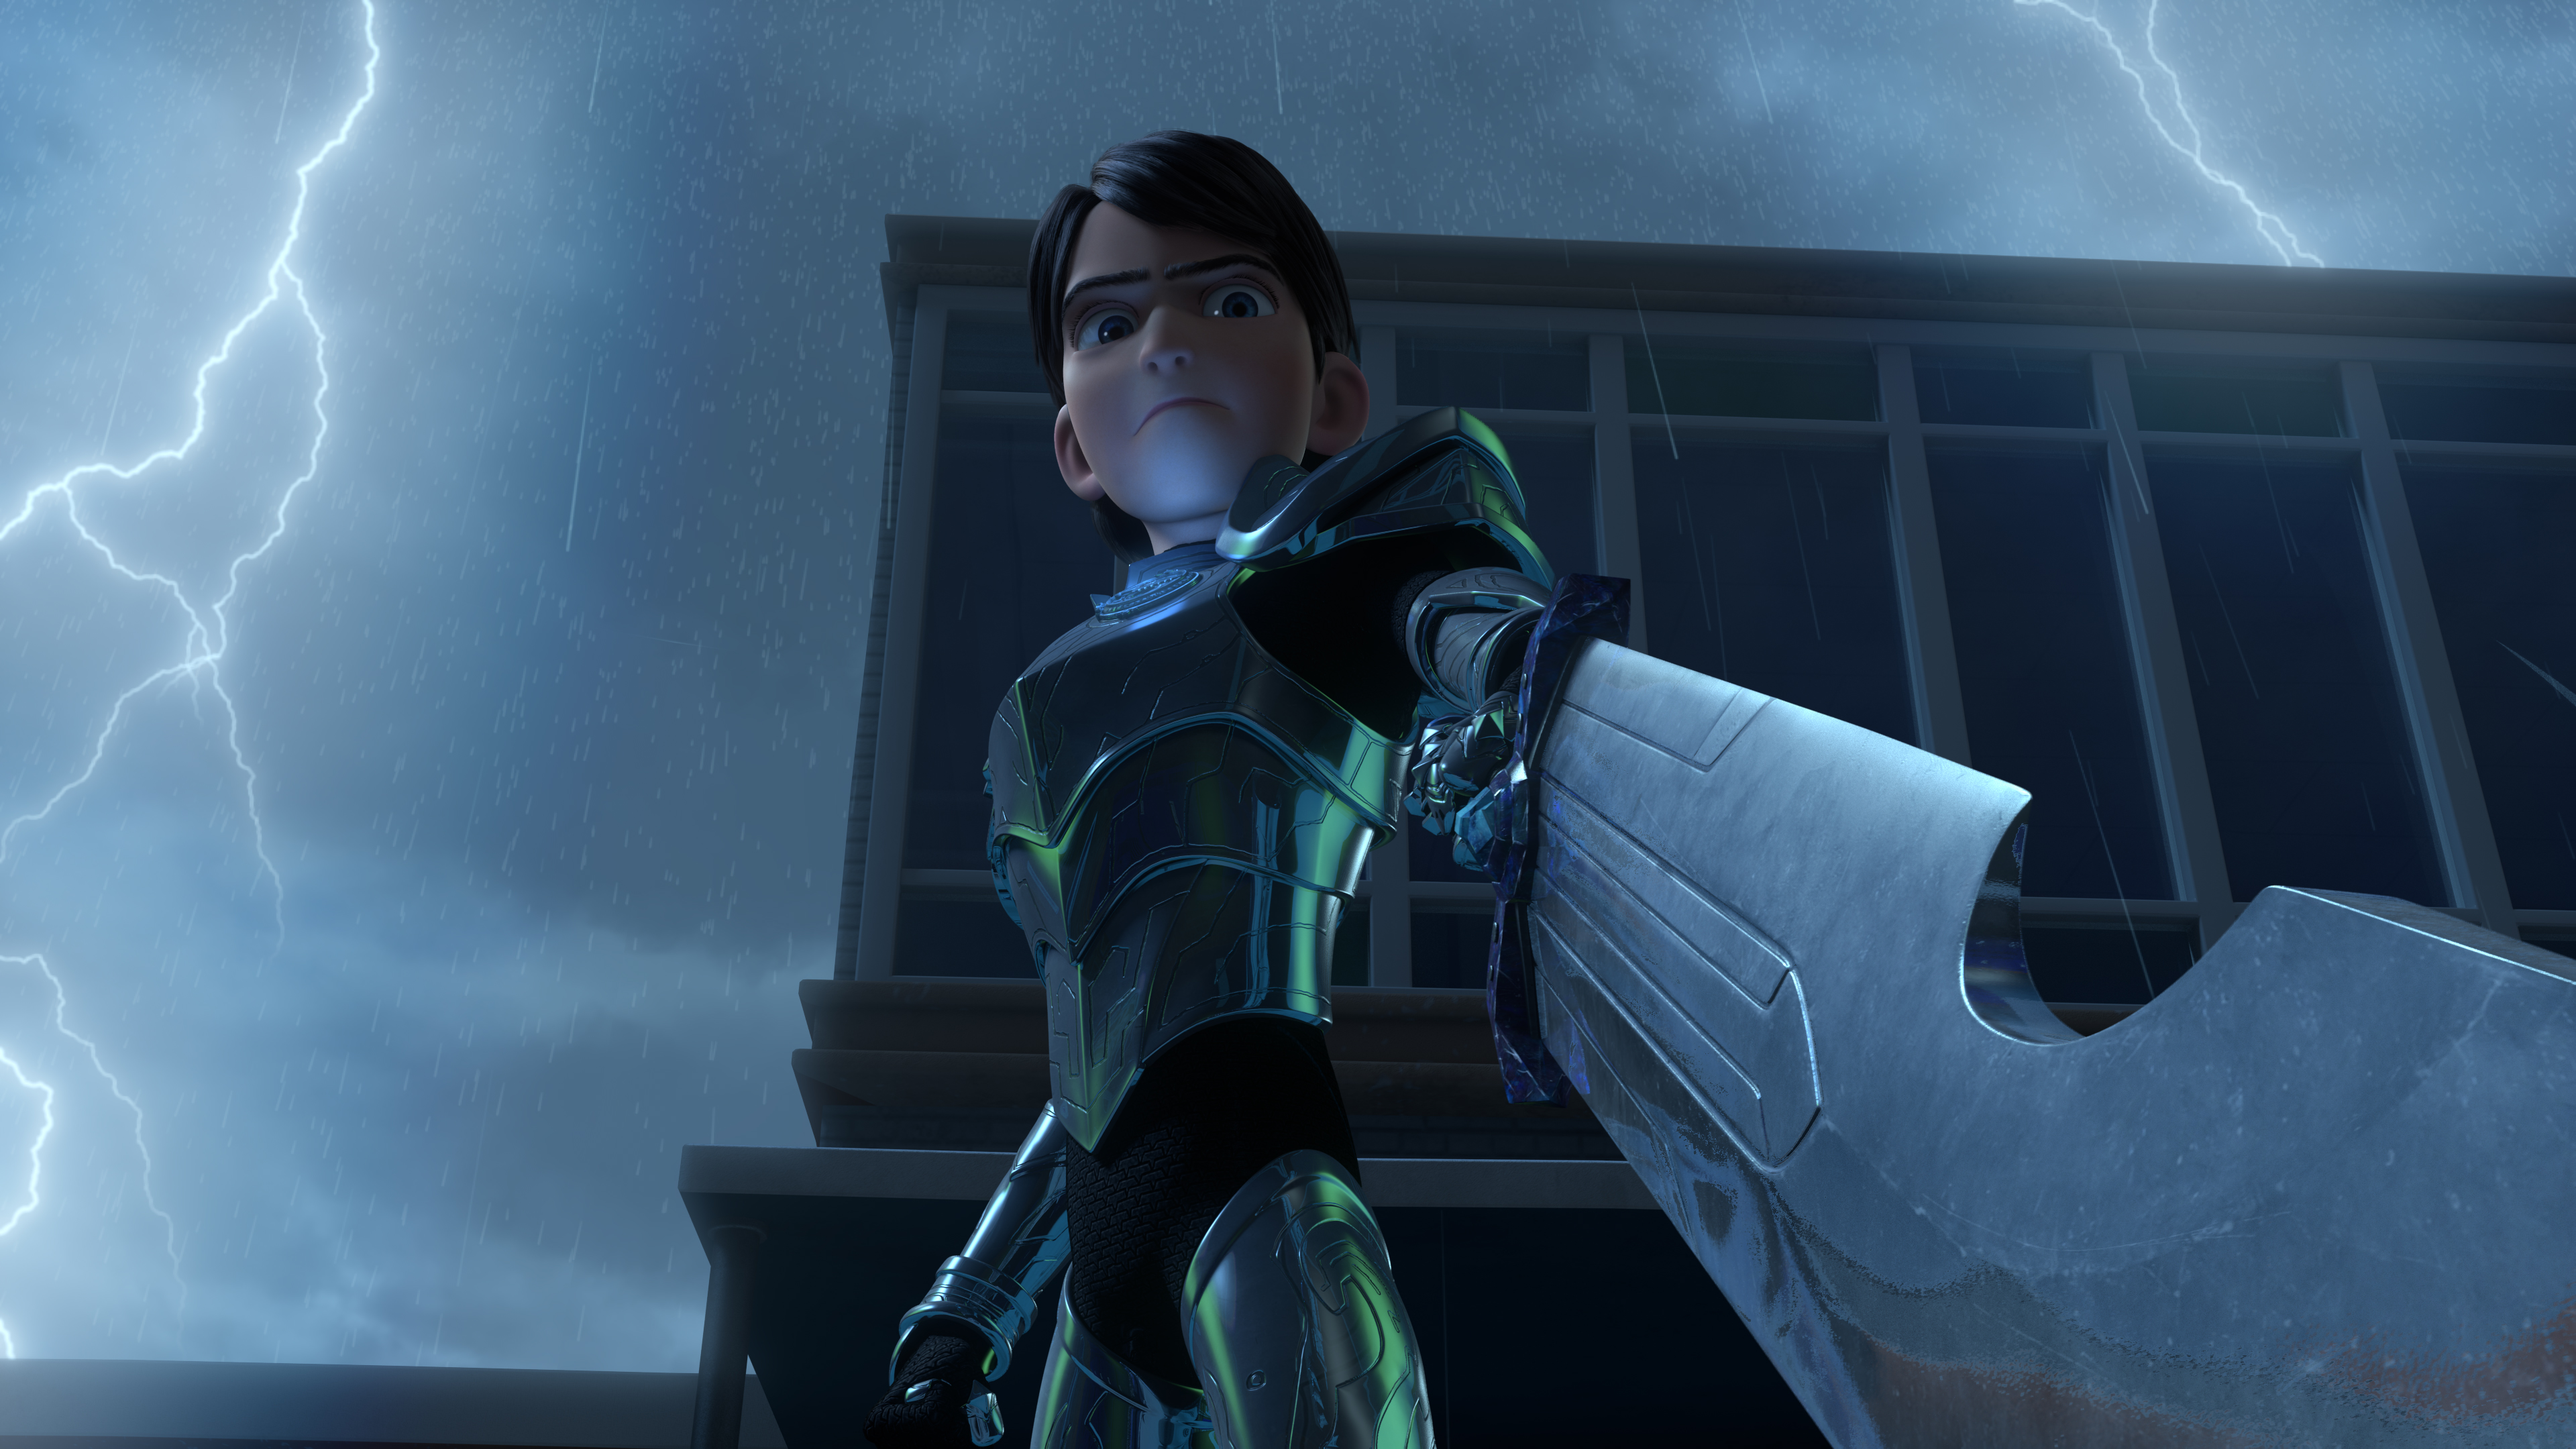 Guillermo del Toro's Trollhunters is the start of something great at Netflix